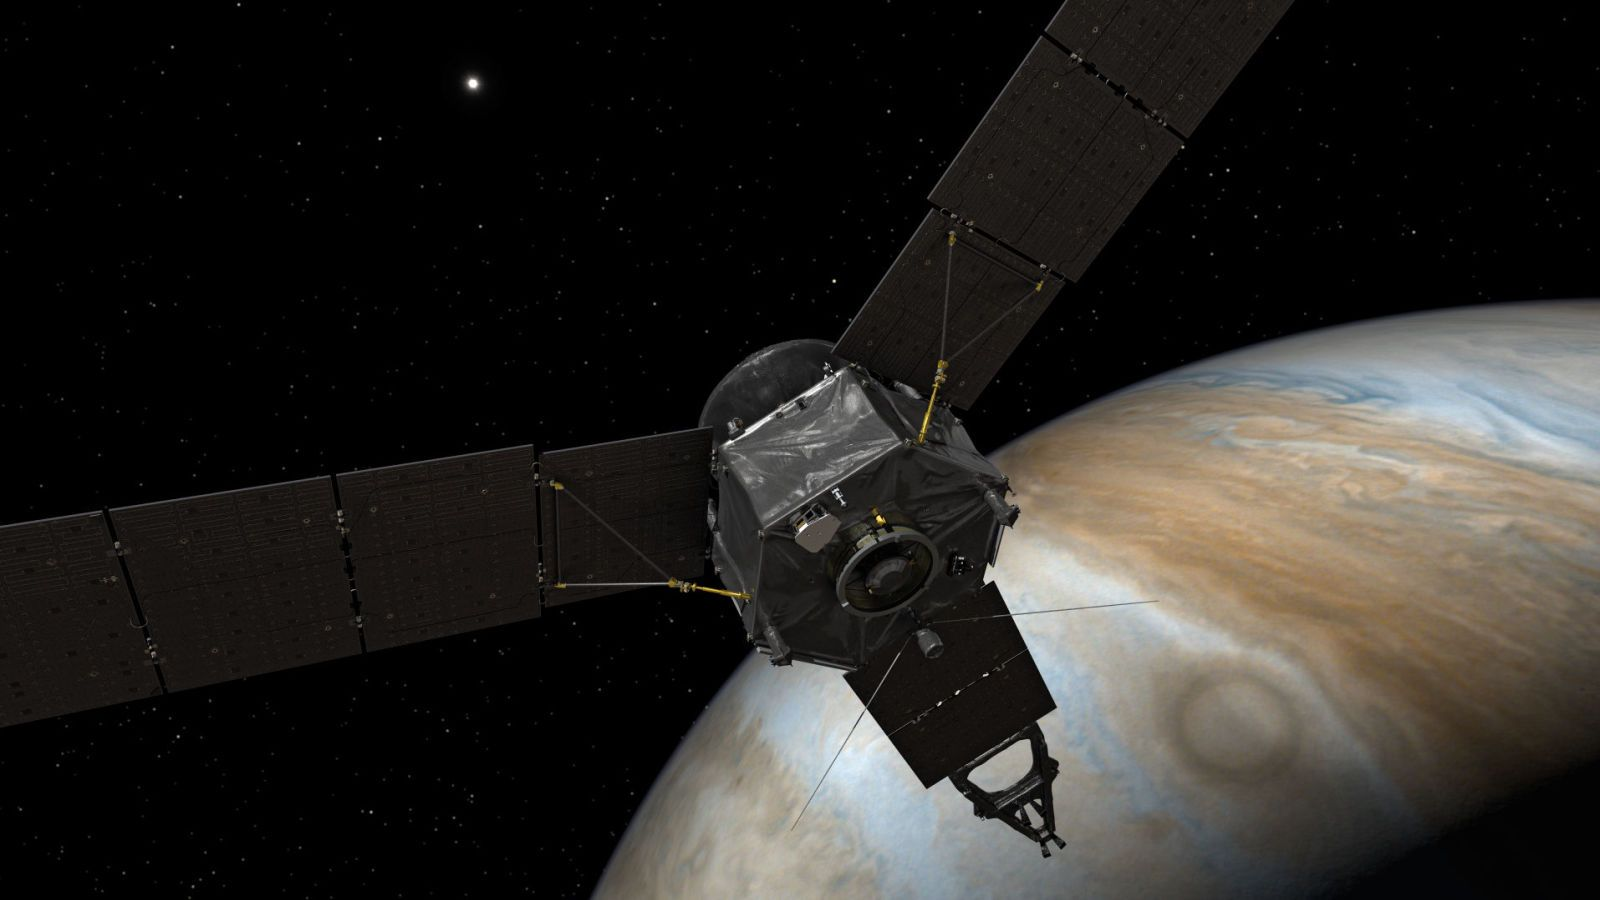 Juno Is About to Make Its Closest Approach to Jupiter